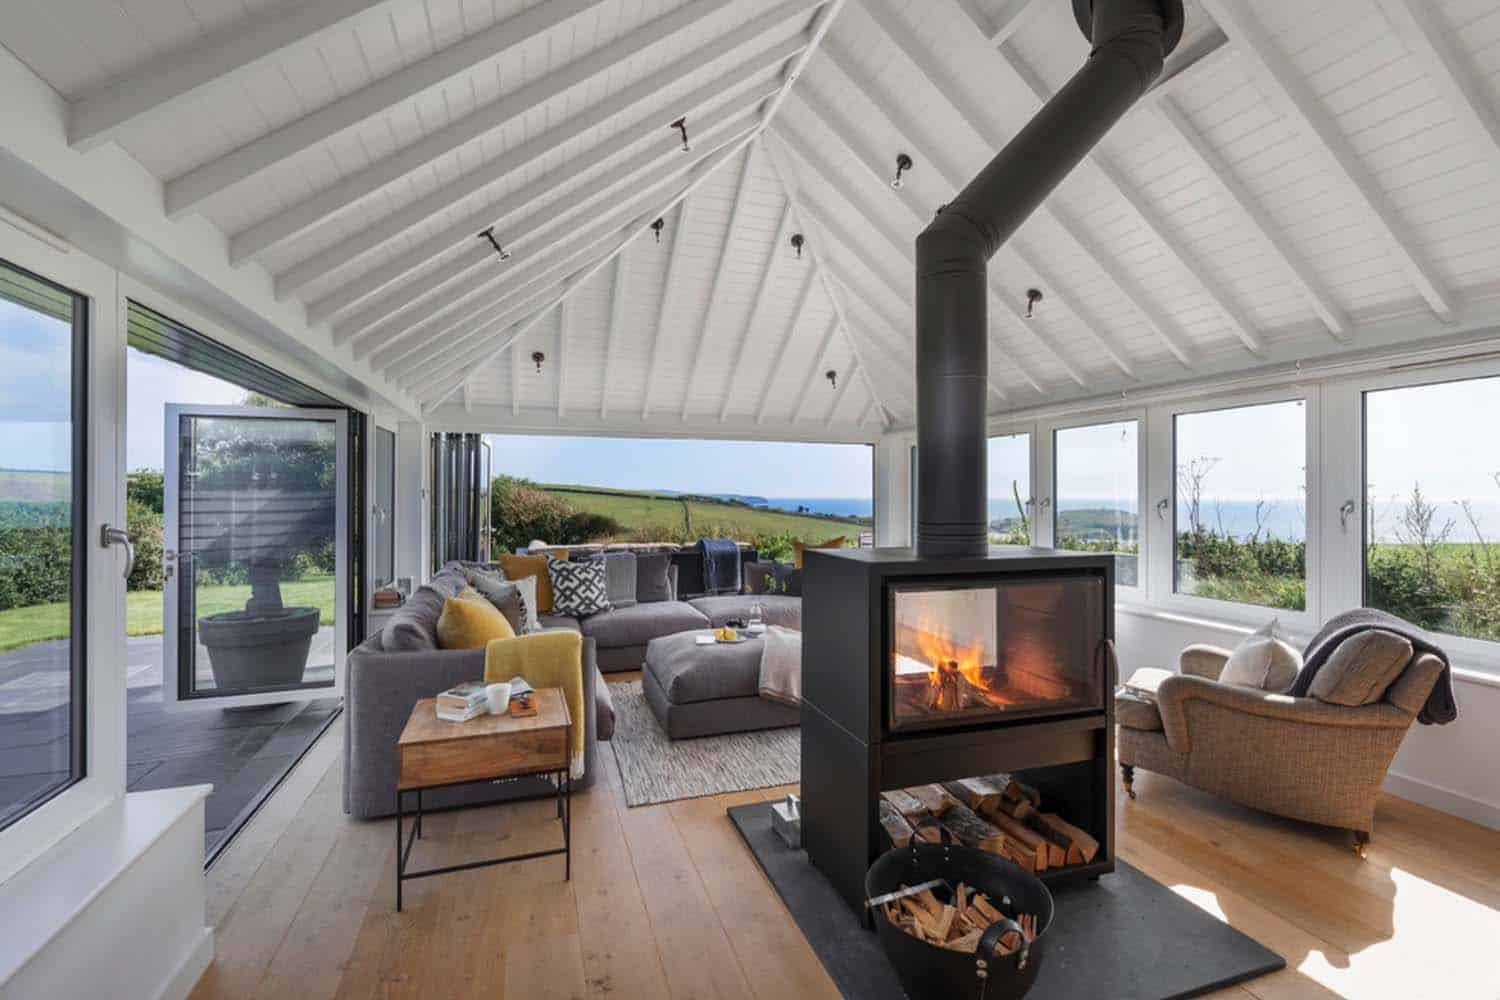 seaside-bungalow-renovation-woodford-architecture-03-1-kindesign